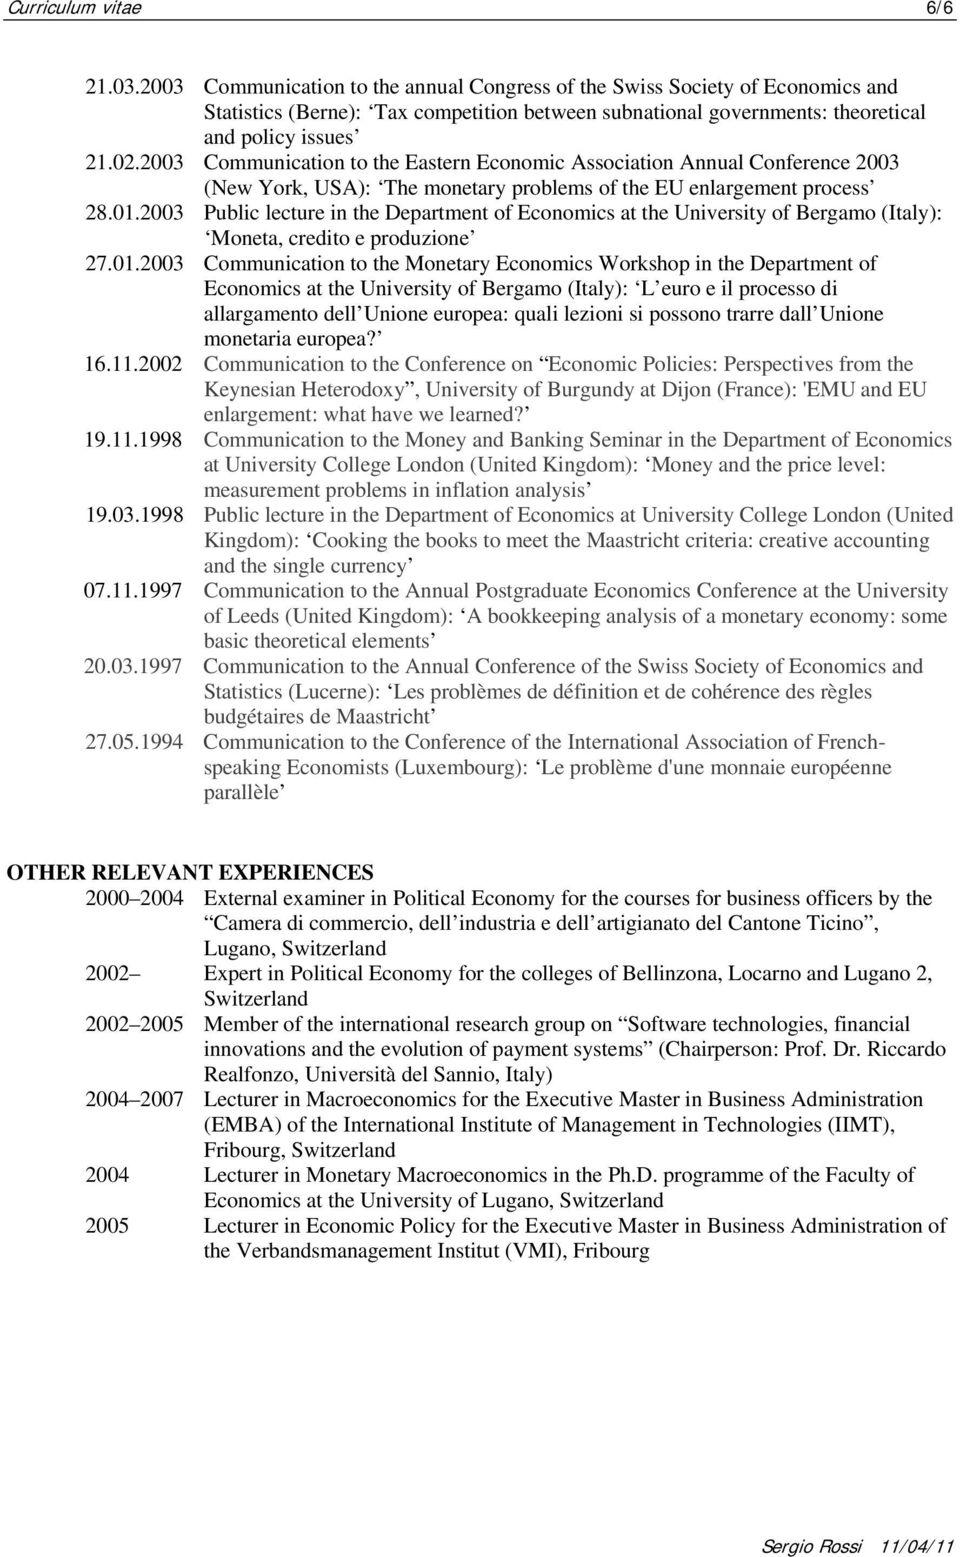 2003 Communication to the Eastern Economic Association Annual Conference 2003 (New York, USA): The monetary problems of the EU enlargement process 28.01.